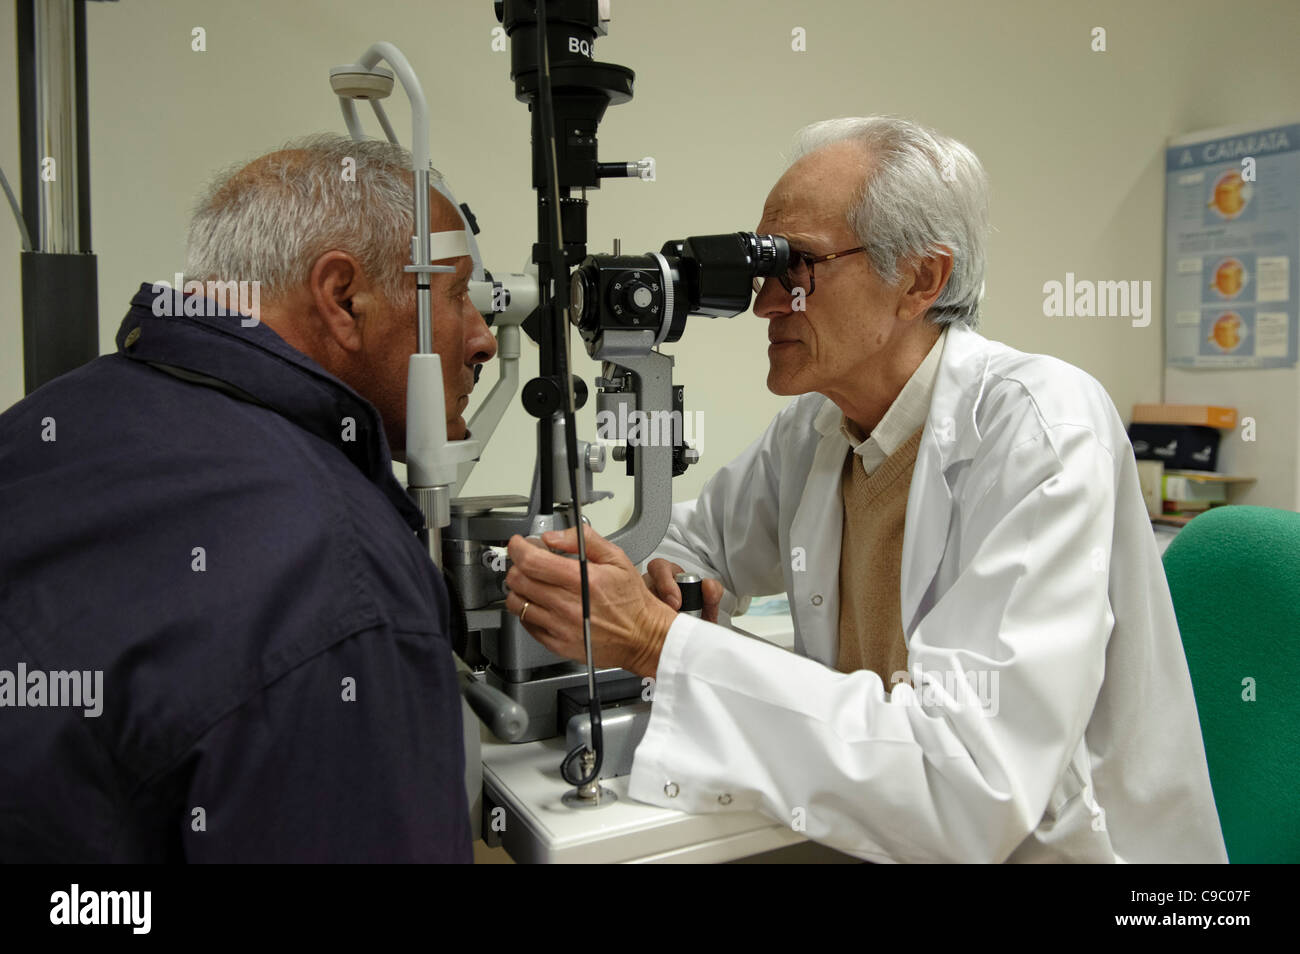 Doctor performing eye test on a patient - Stock Image